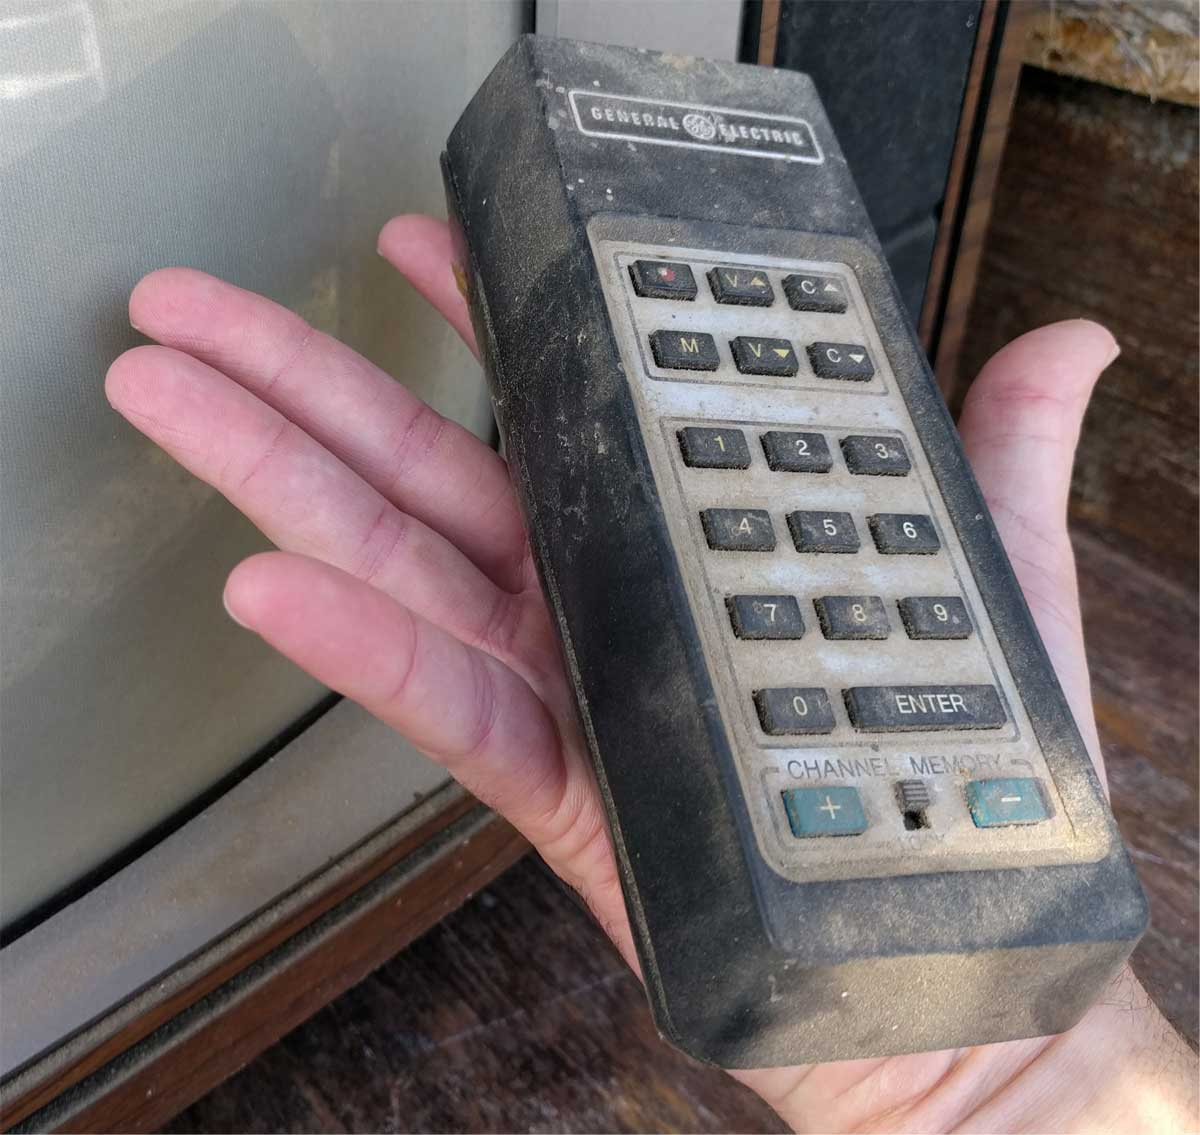 Big old styled remote control